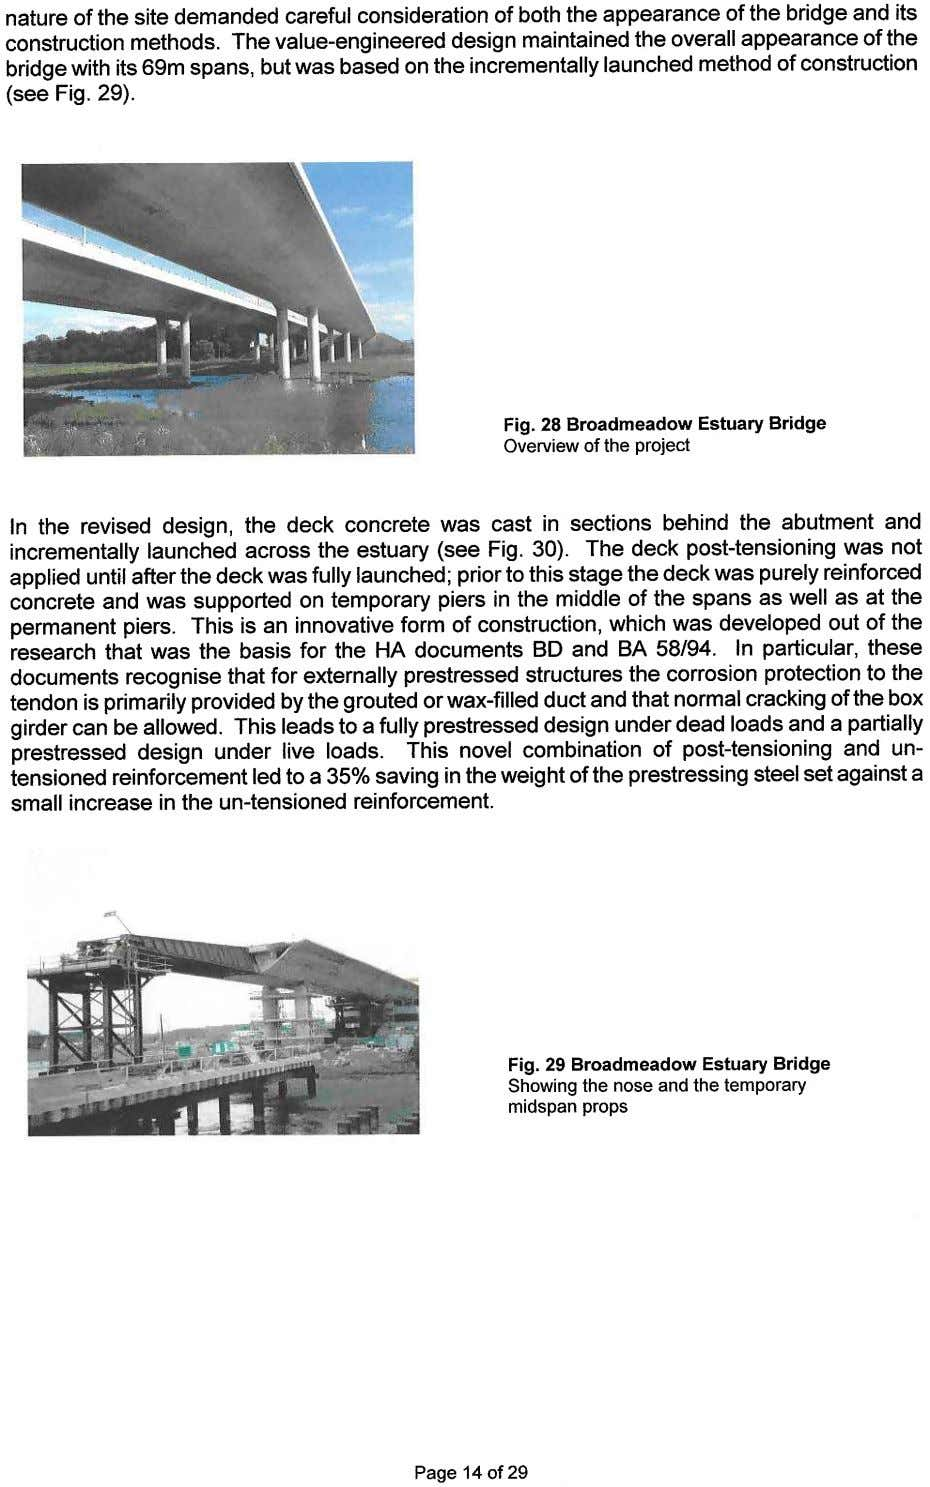 nature of the site demanded careful consideration of both the appearance of the bridge and